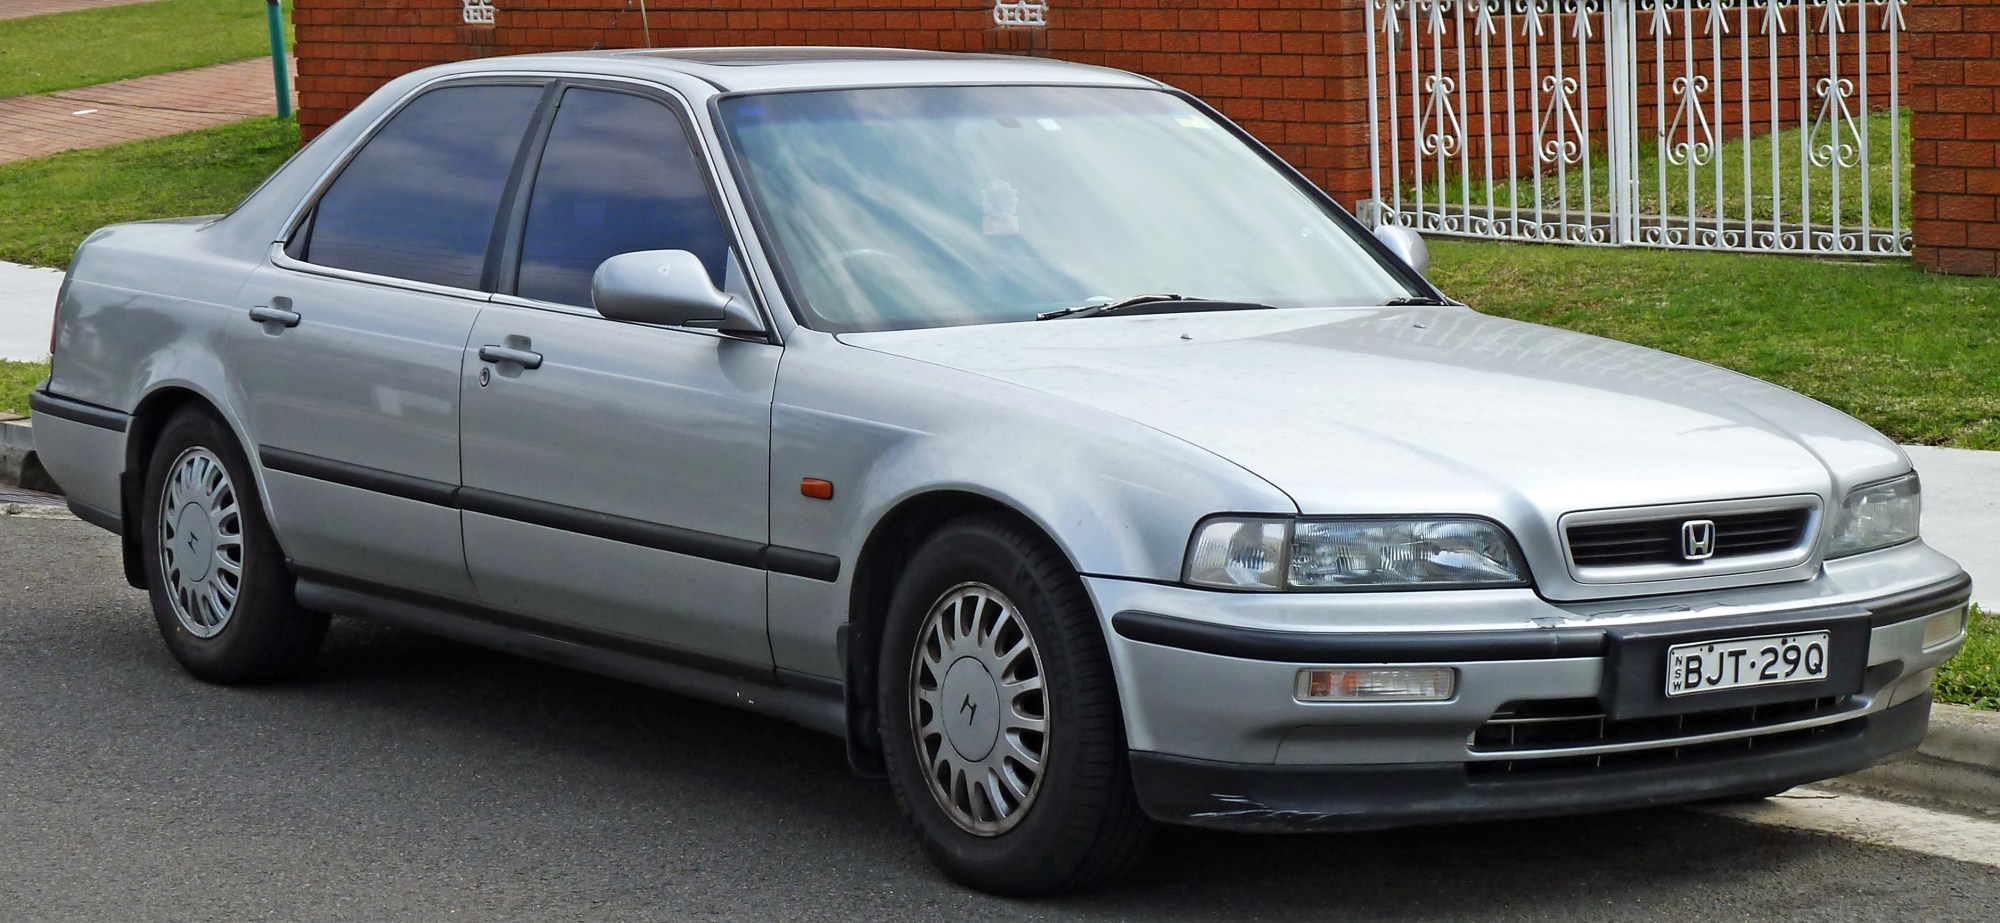 hight resolution of also called acura legend daewoo arcadia